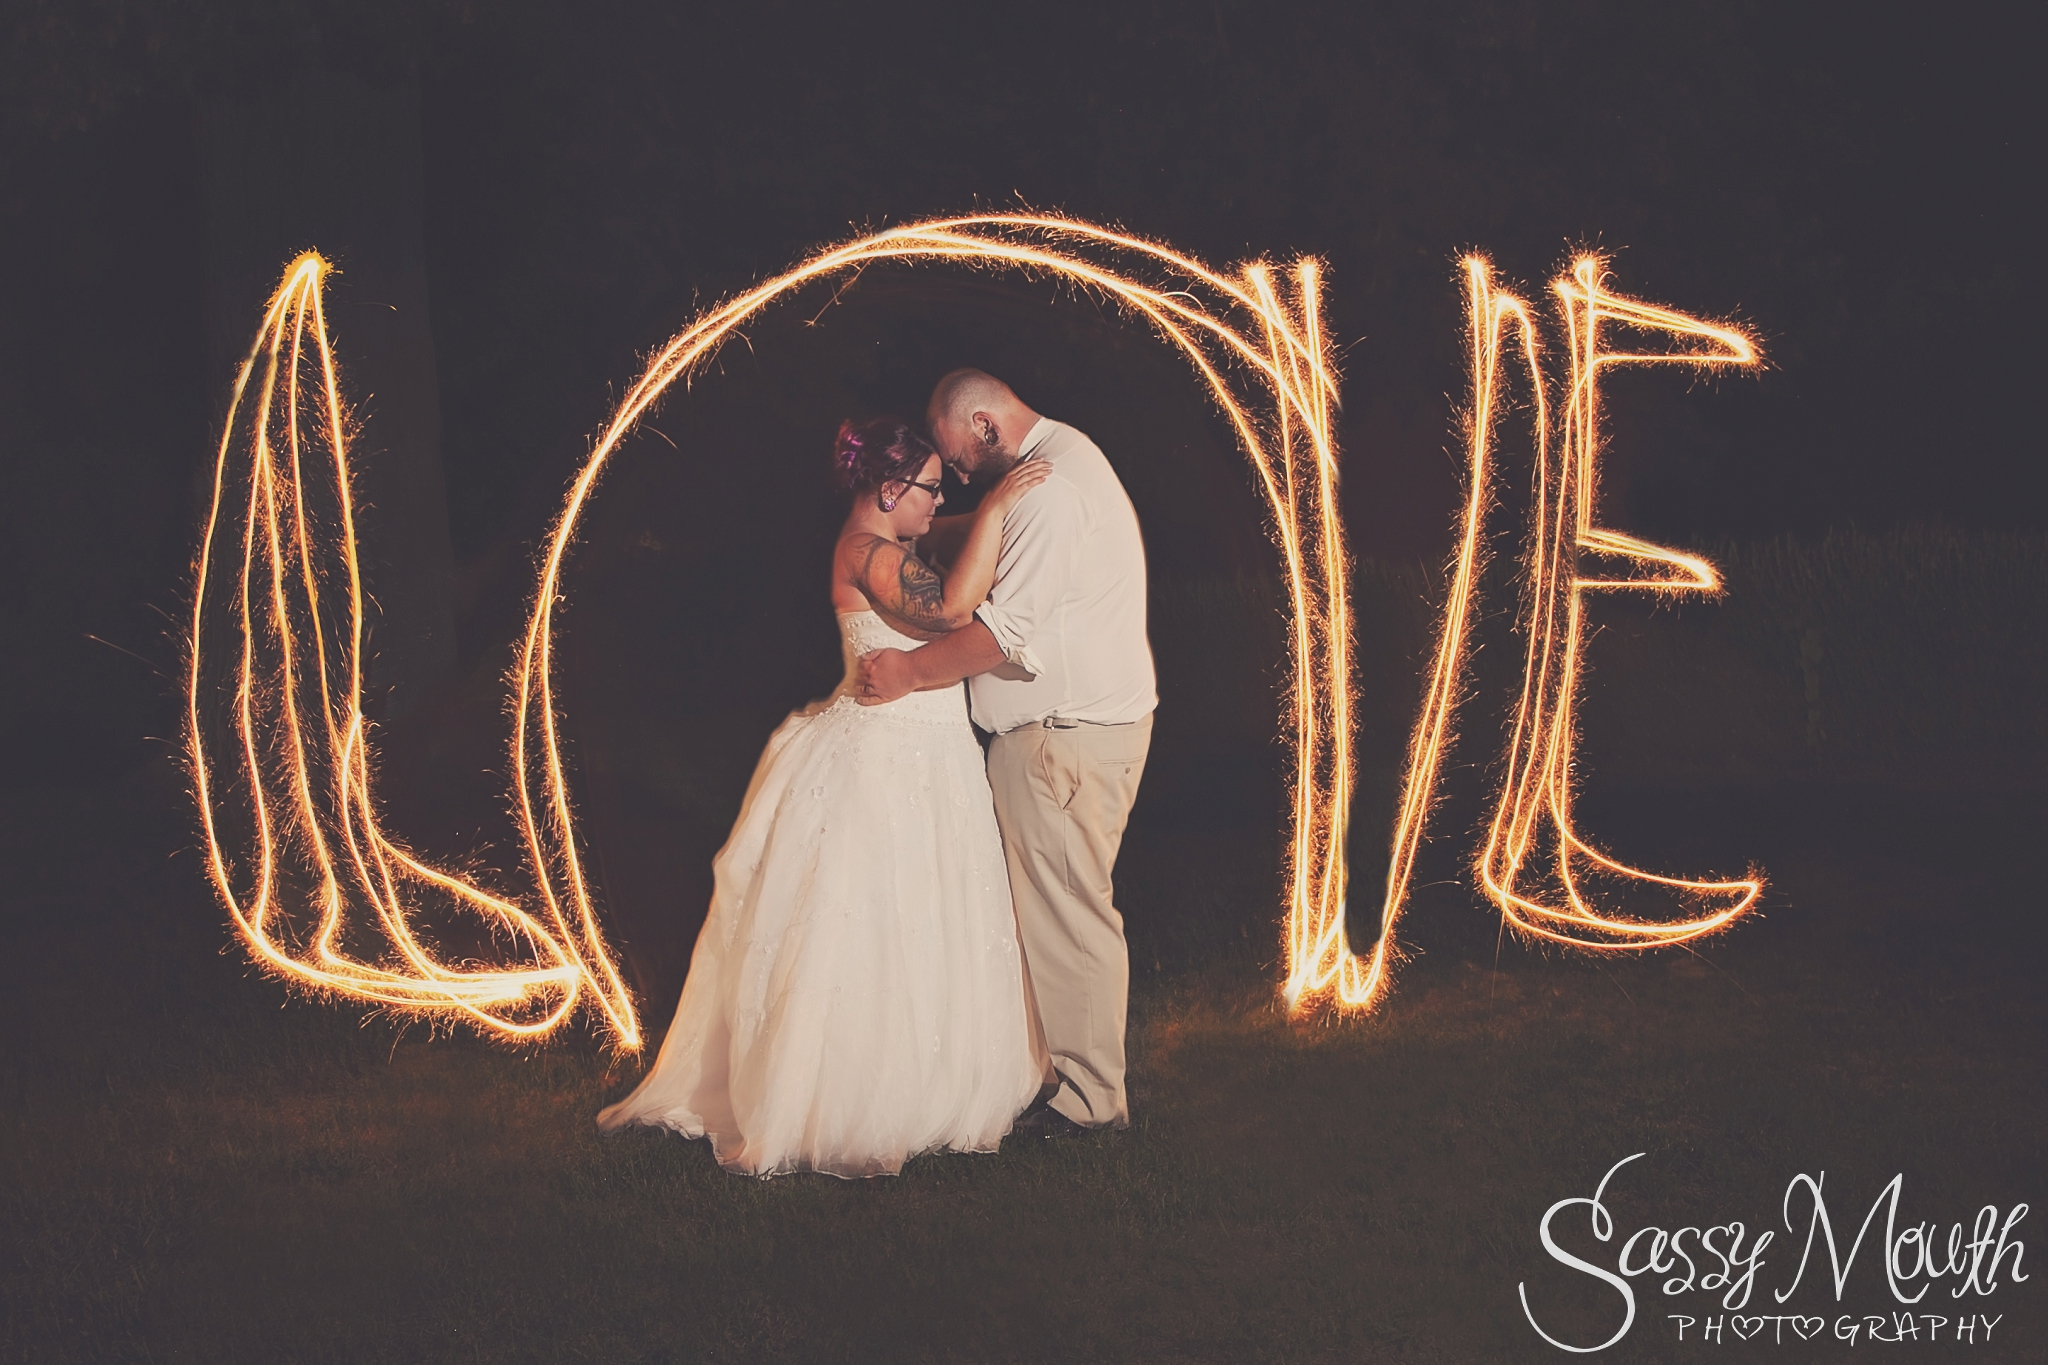 Sassy Mouth Photography In Connecticut – Light Painting     Sassy ... for Light Painting Photography Wedding  21ane